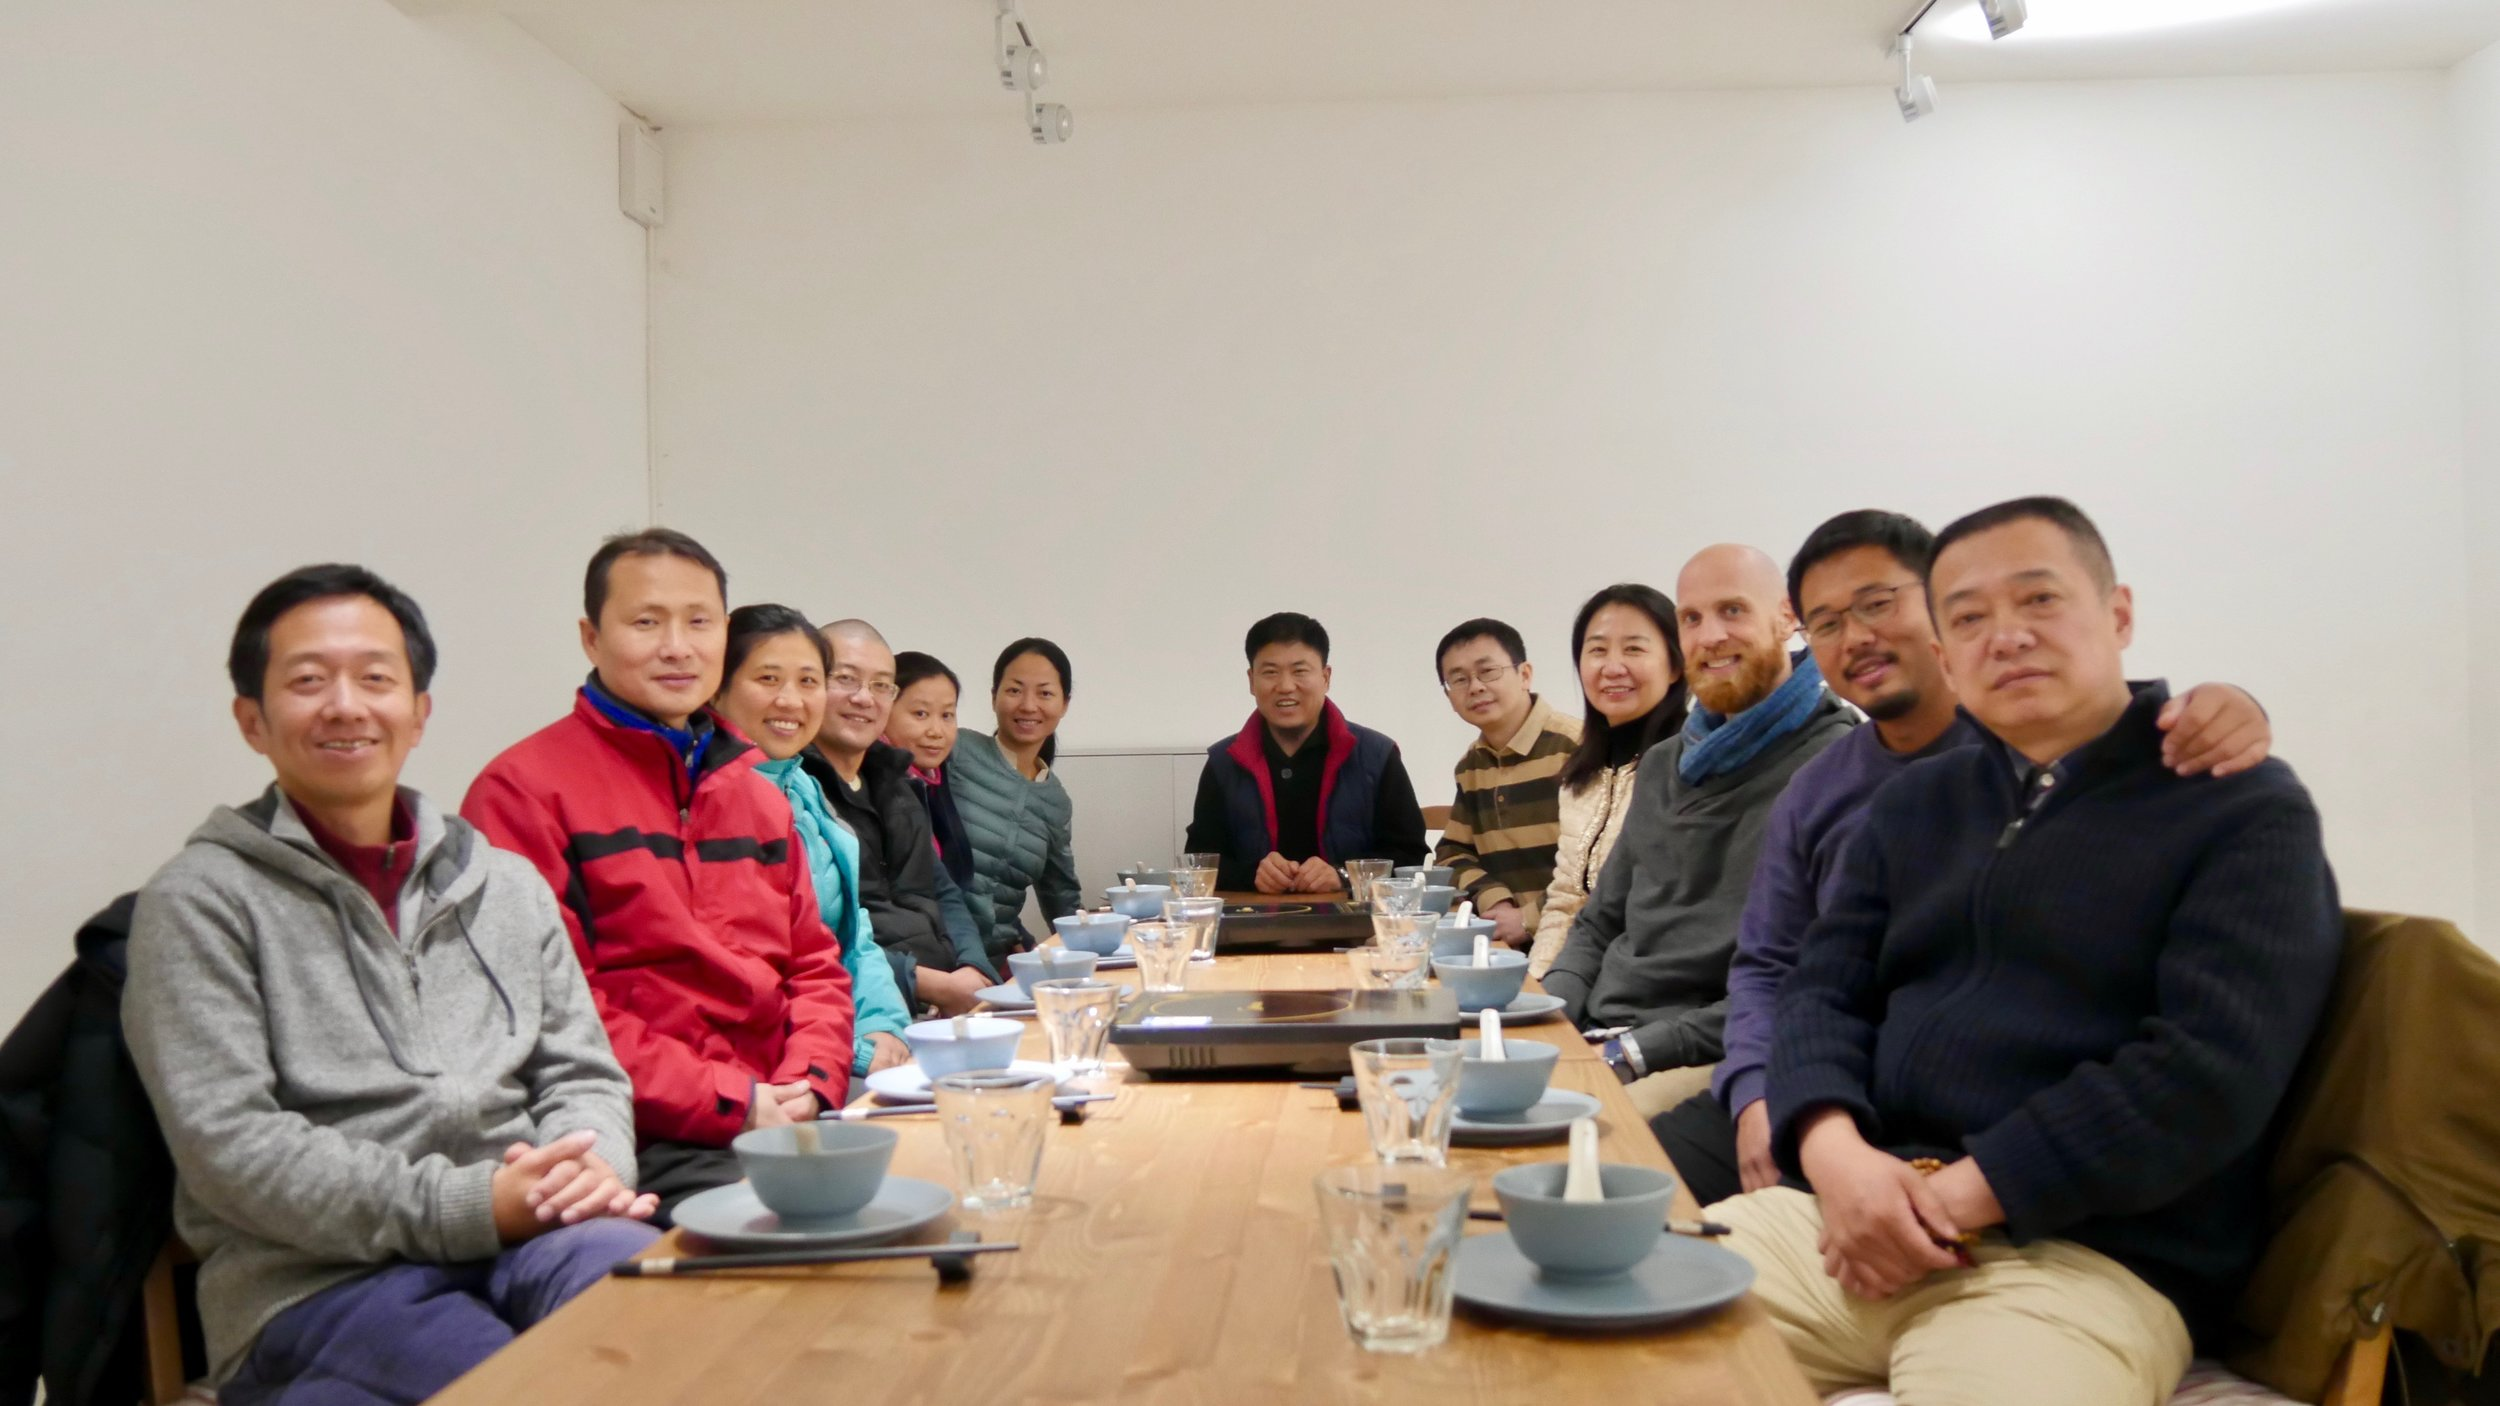 A reunion of great practitioners and friends (Beijing, China)